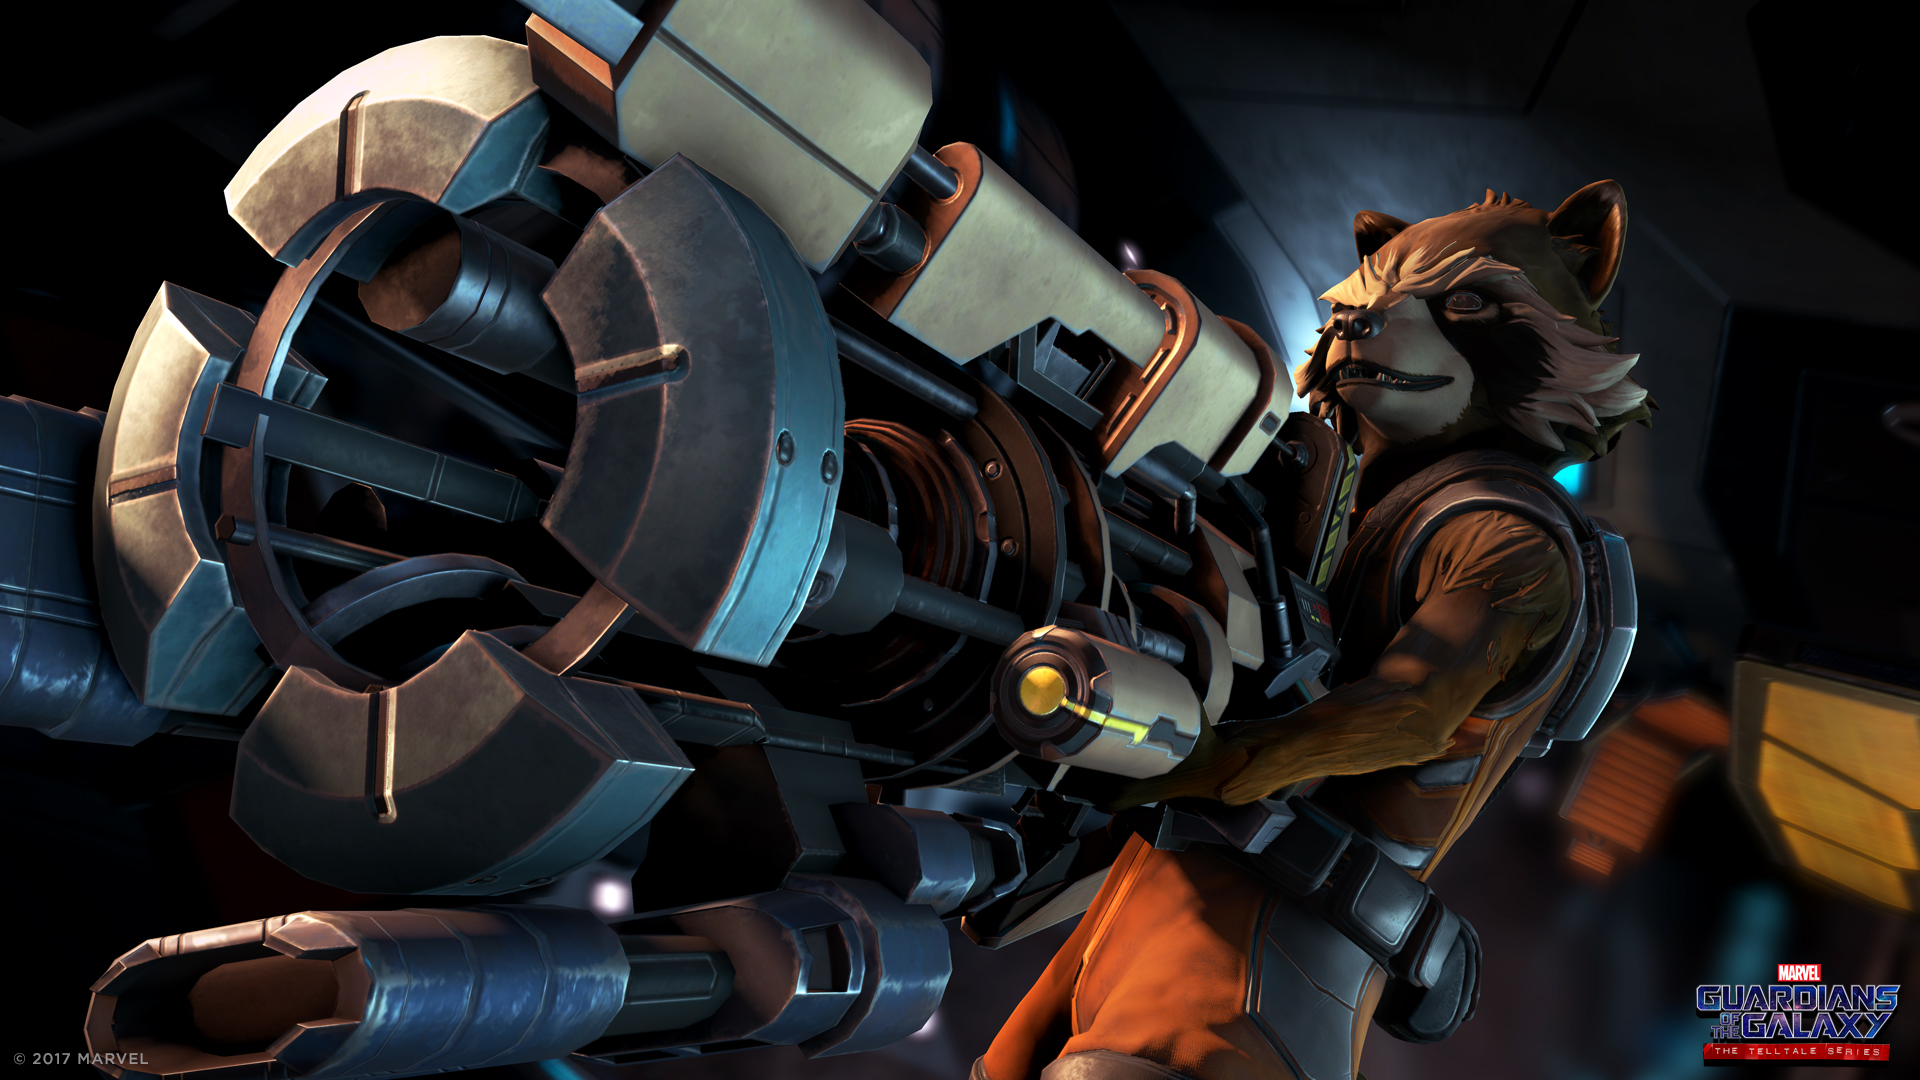 Marvel's Guardians of the Galaxy: The Telltale Series reveals first cast details